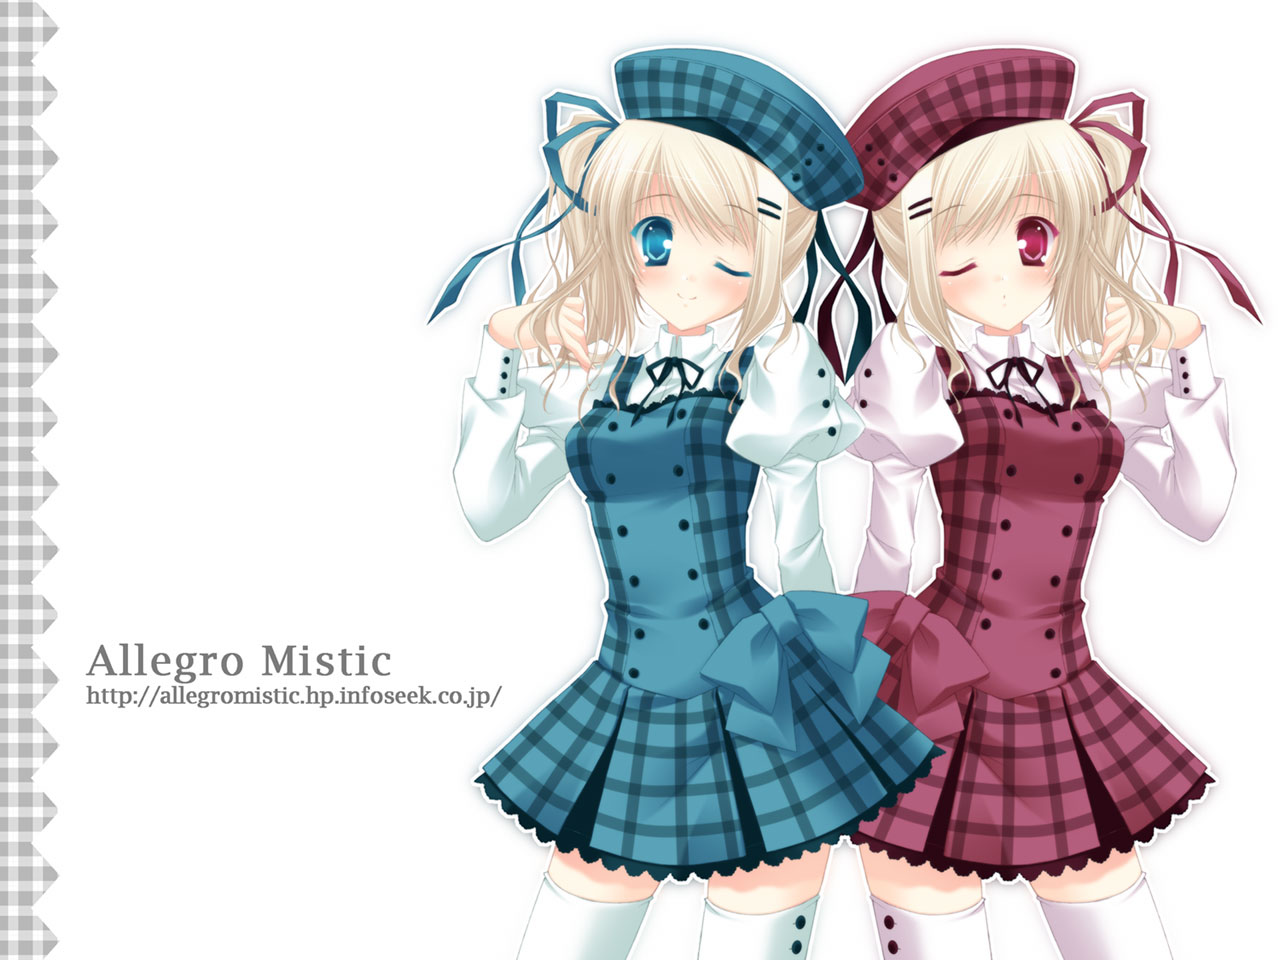 2girls allegro_mistic blonde_hair blue_eyes red_eyes ribbons skirt tagme thighhighs twins watermark wink